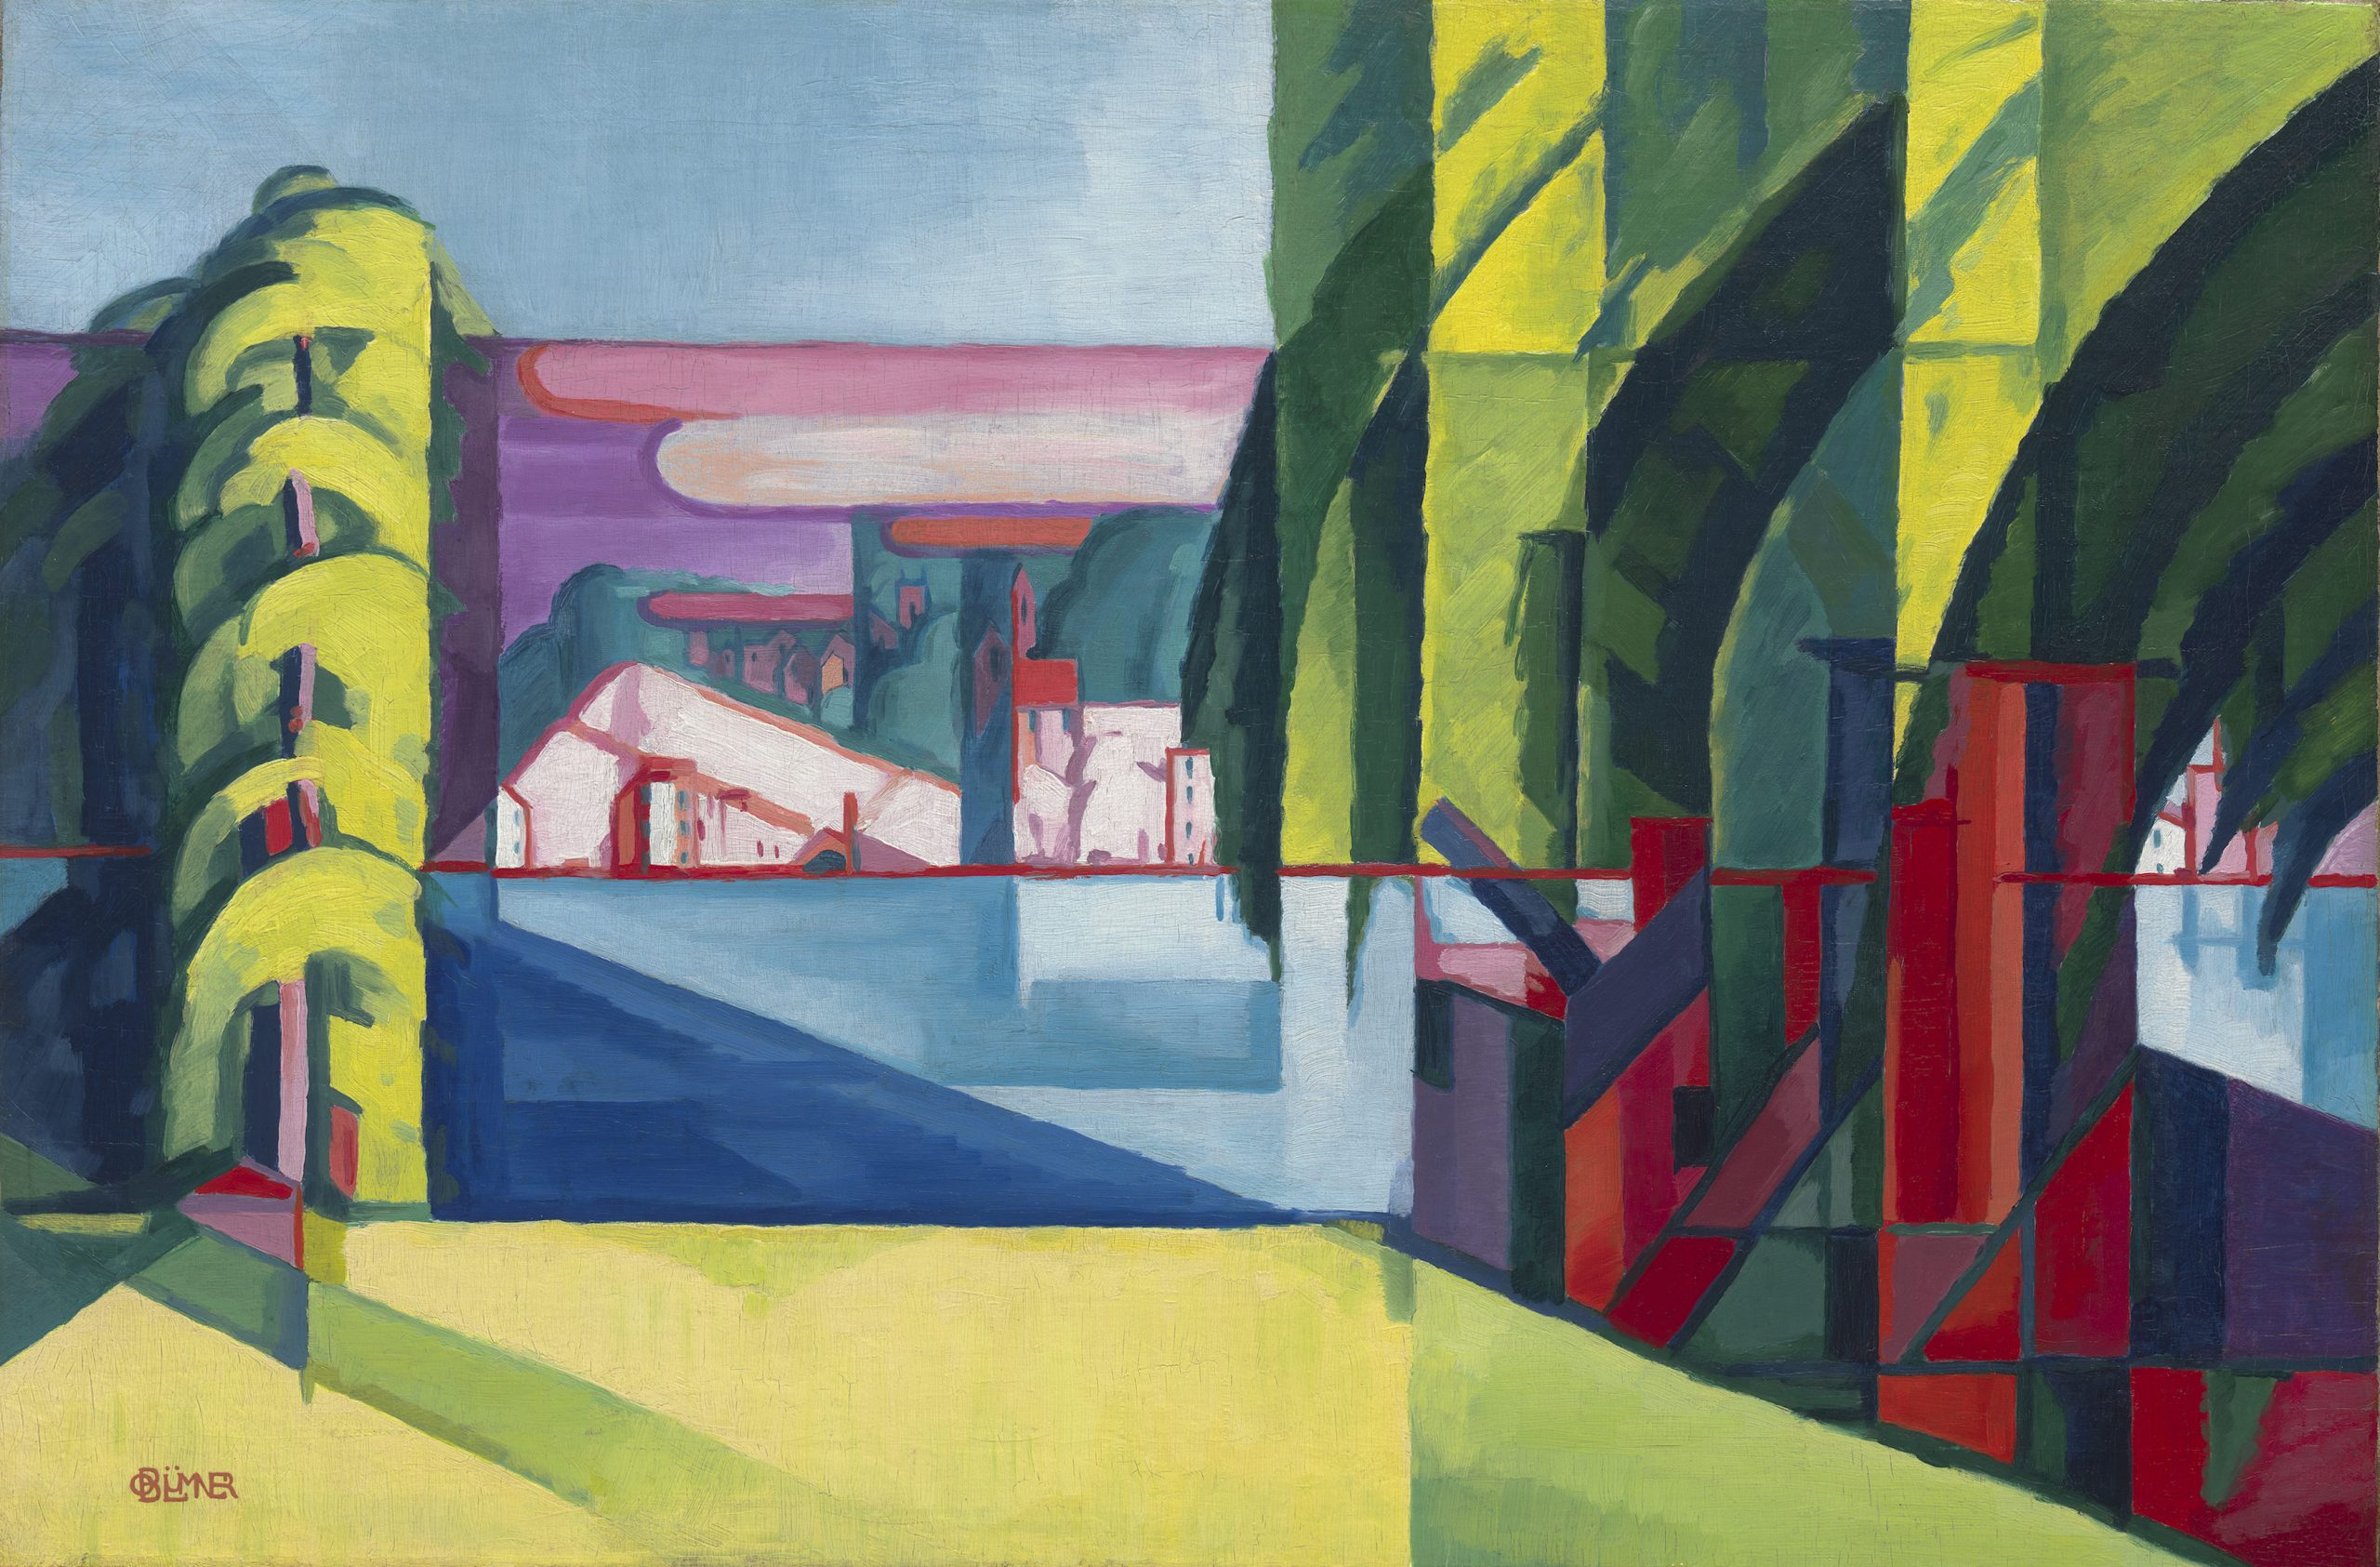 A cubist seascape featuring the view across a waterway, with trees and buildings on the edges of the composition.